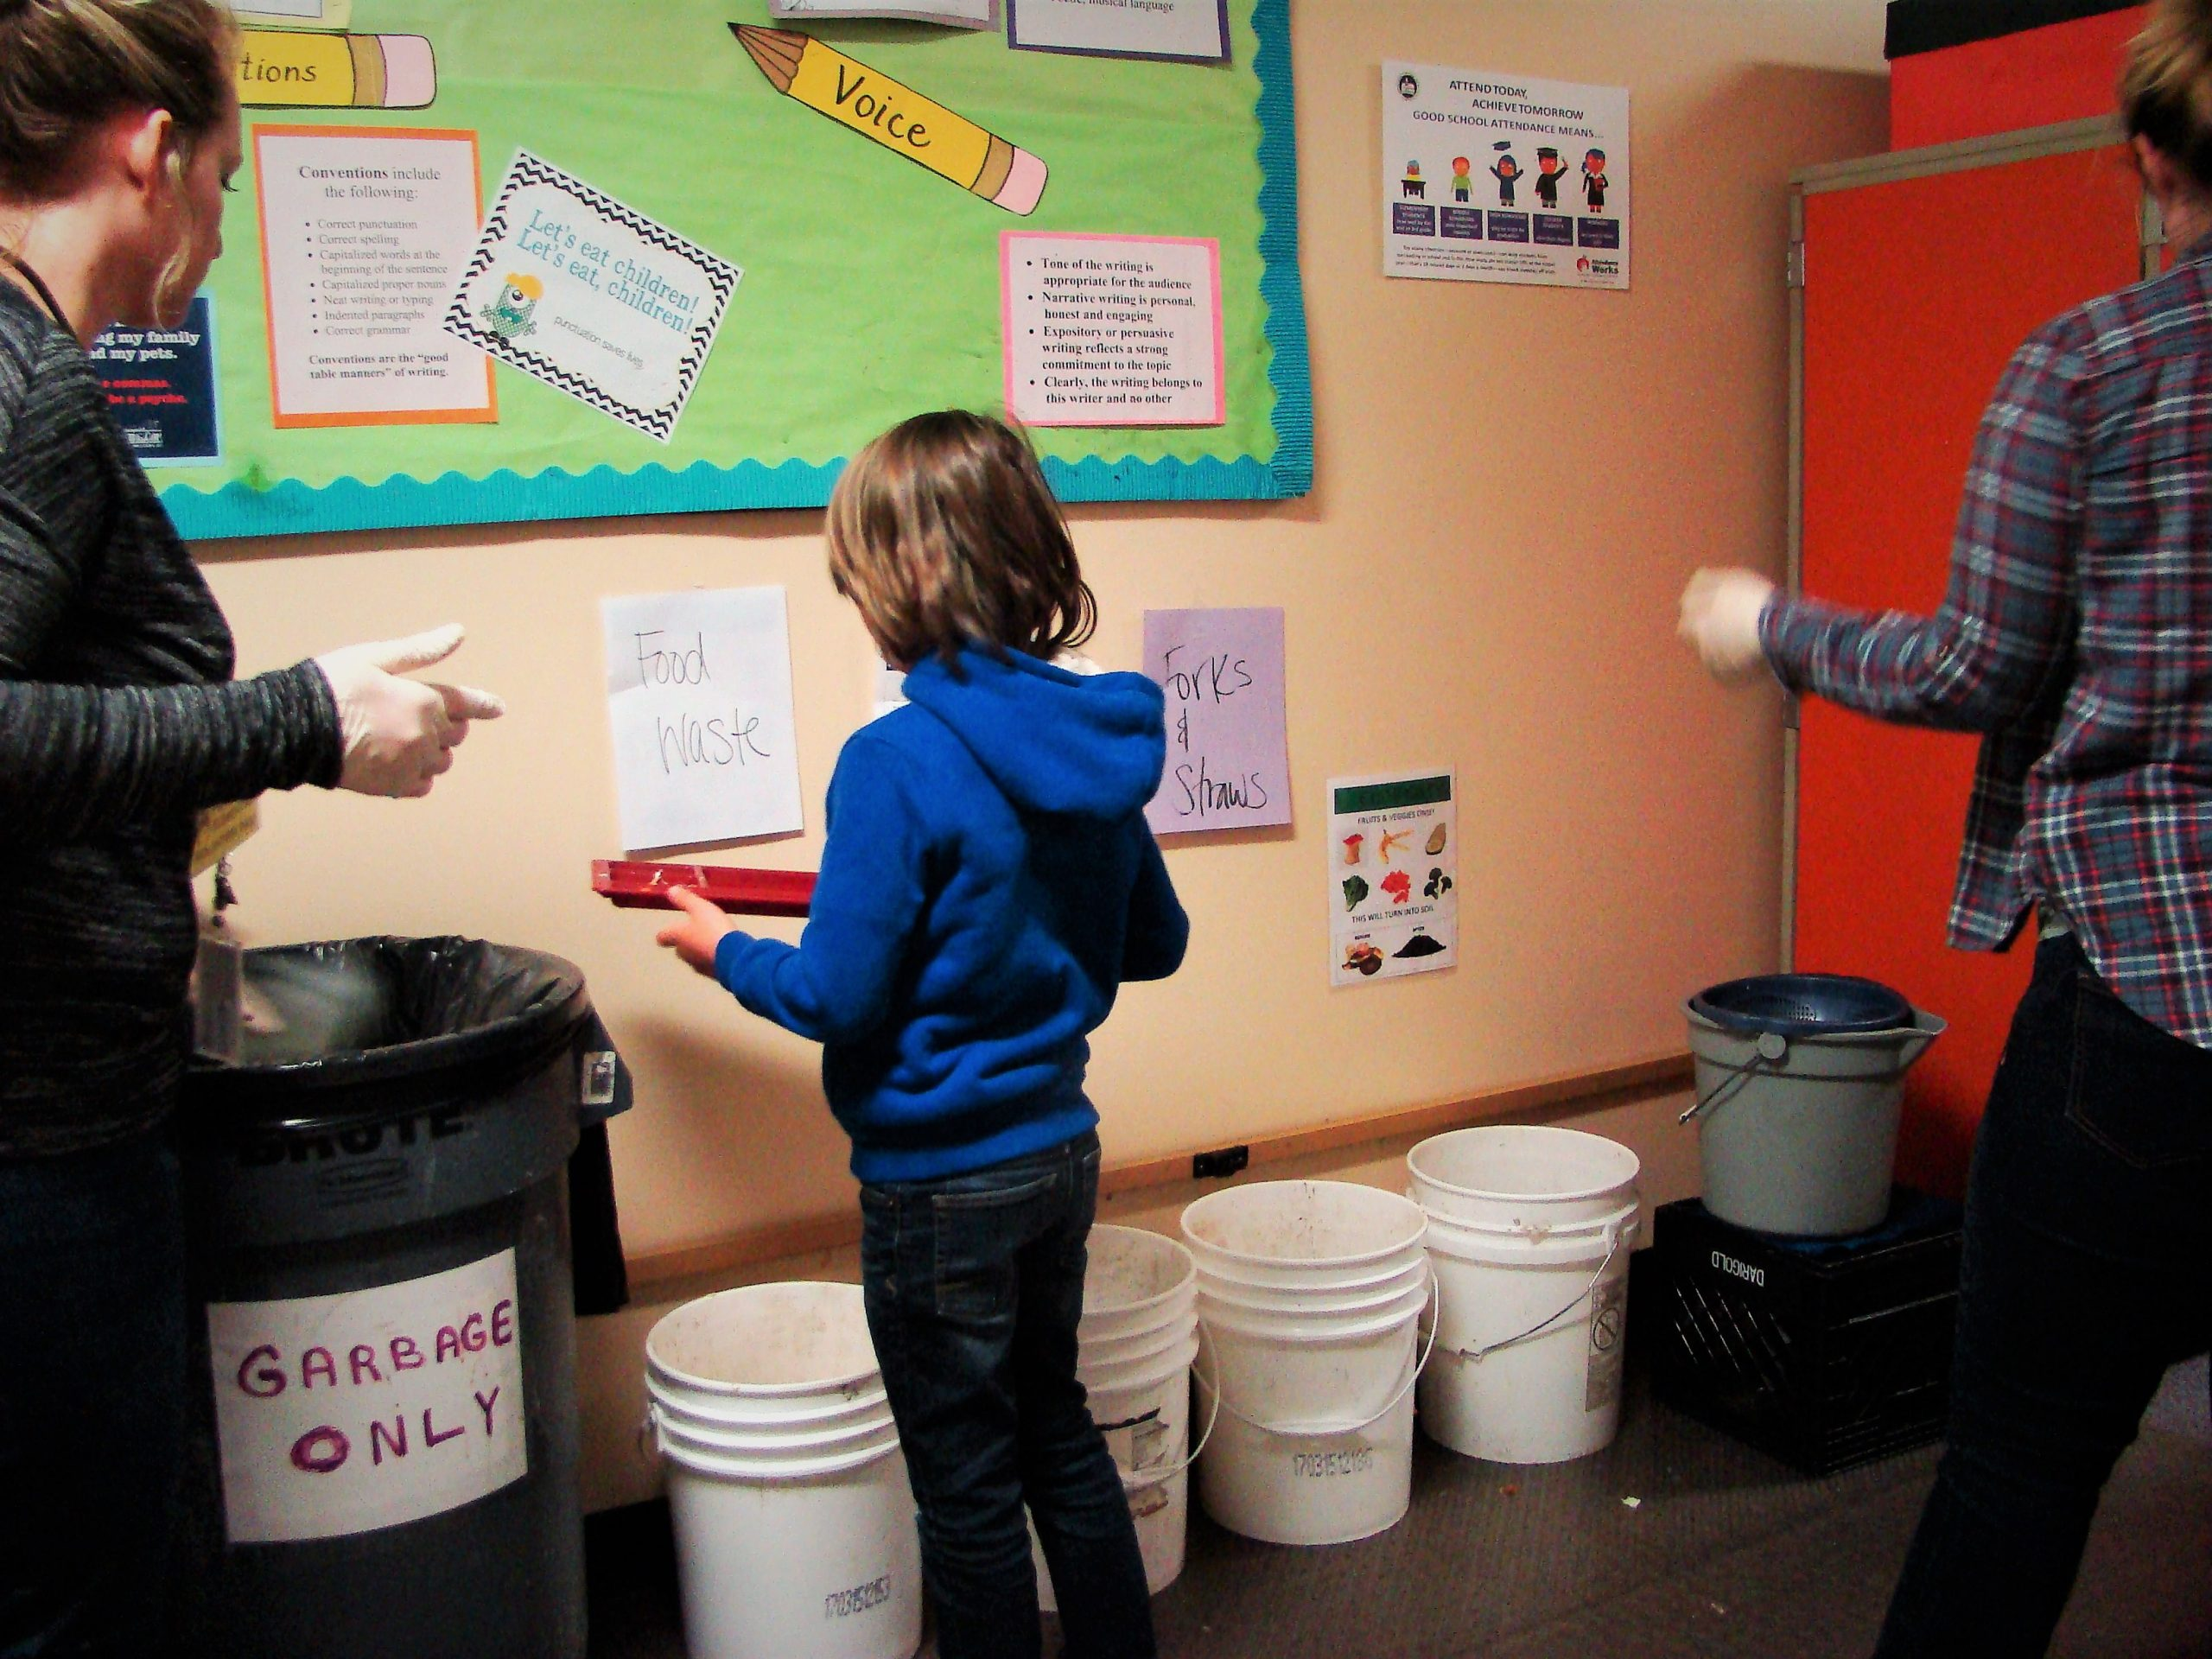 Student carrying a bucket of food waste from school lunches at the Franklin Elementary Food Waste event